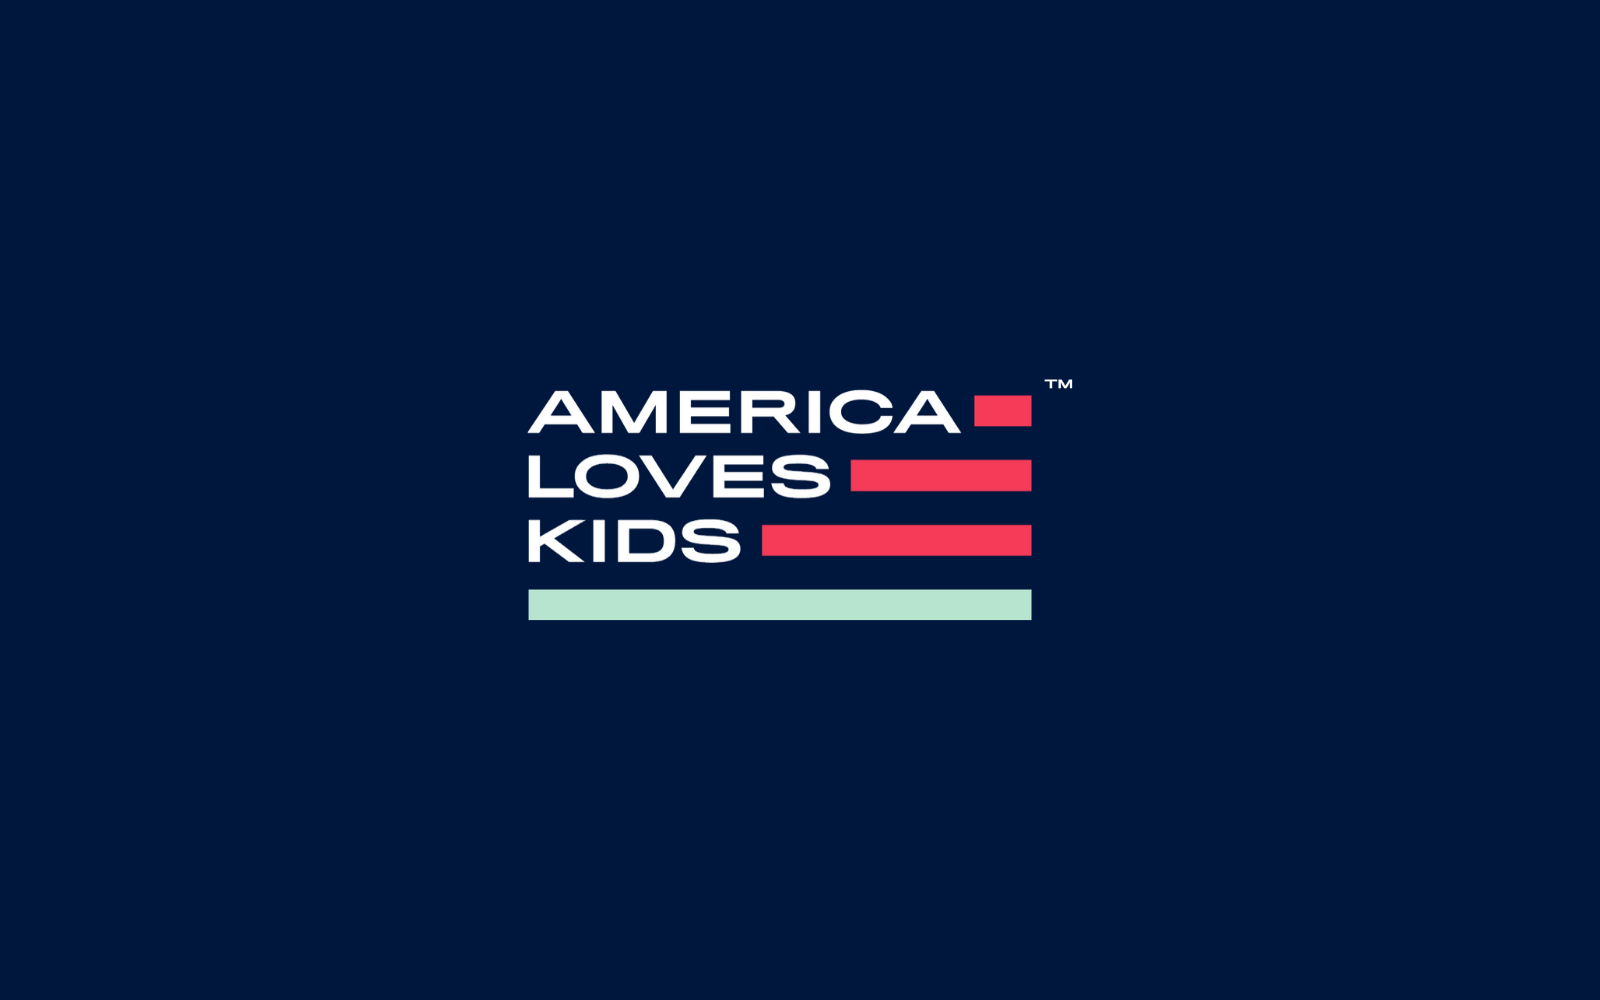 Support America Loves Kids image